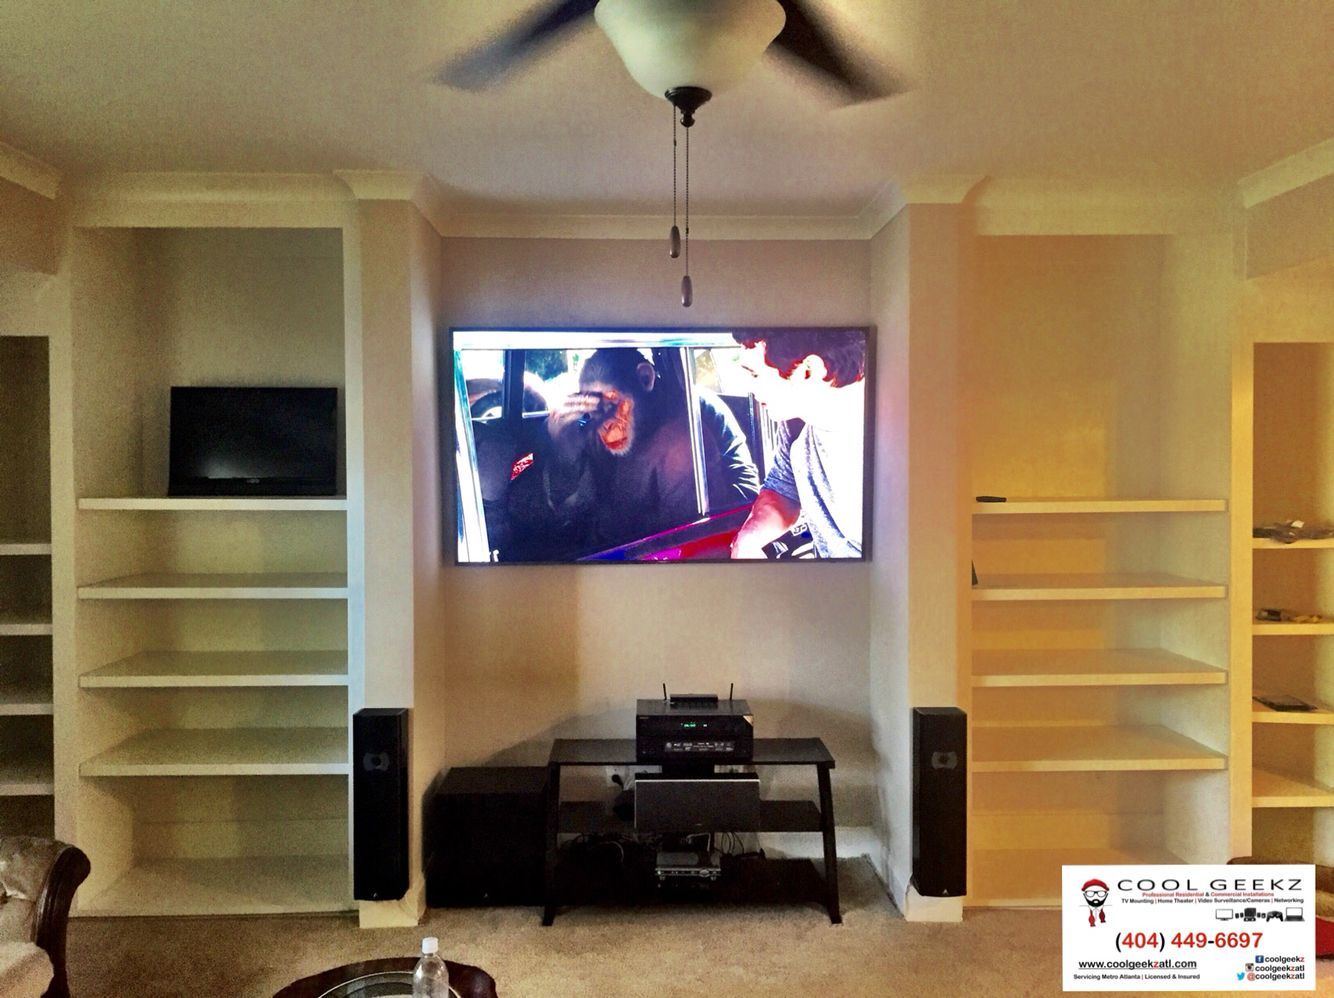 hight resolution of full home theater setup done 75 4k tv onkyo receiver atlantic tech speakers and a monster subwoofer